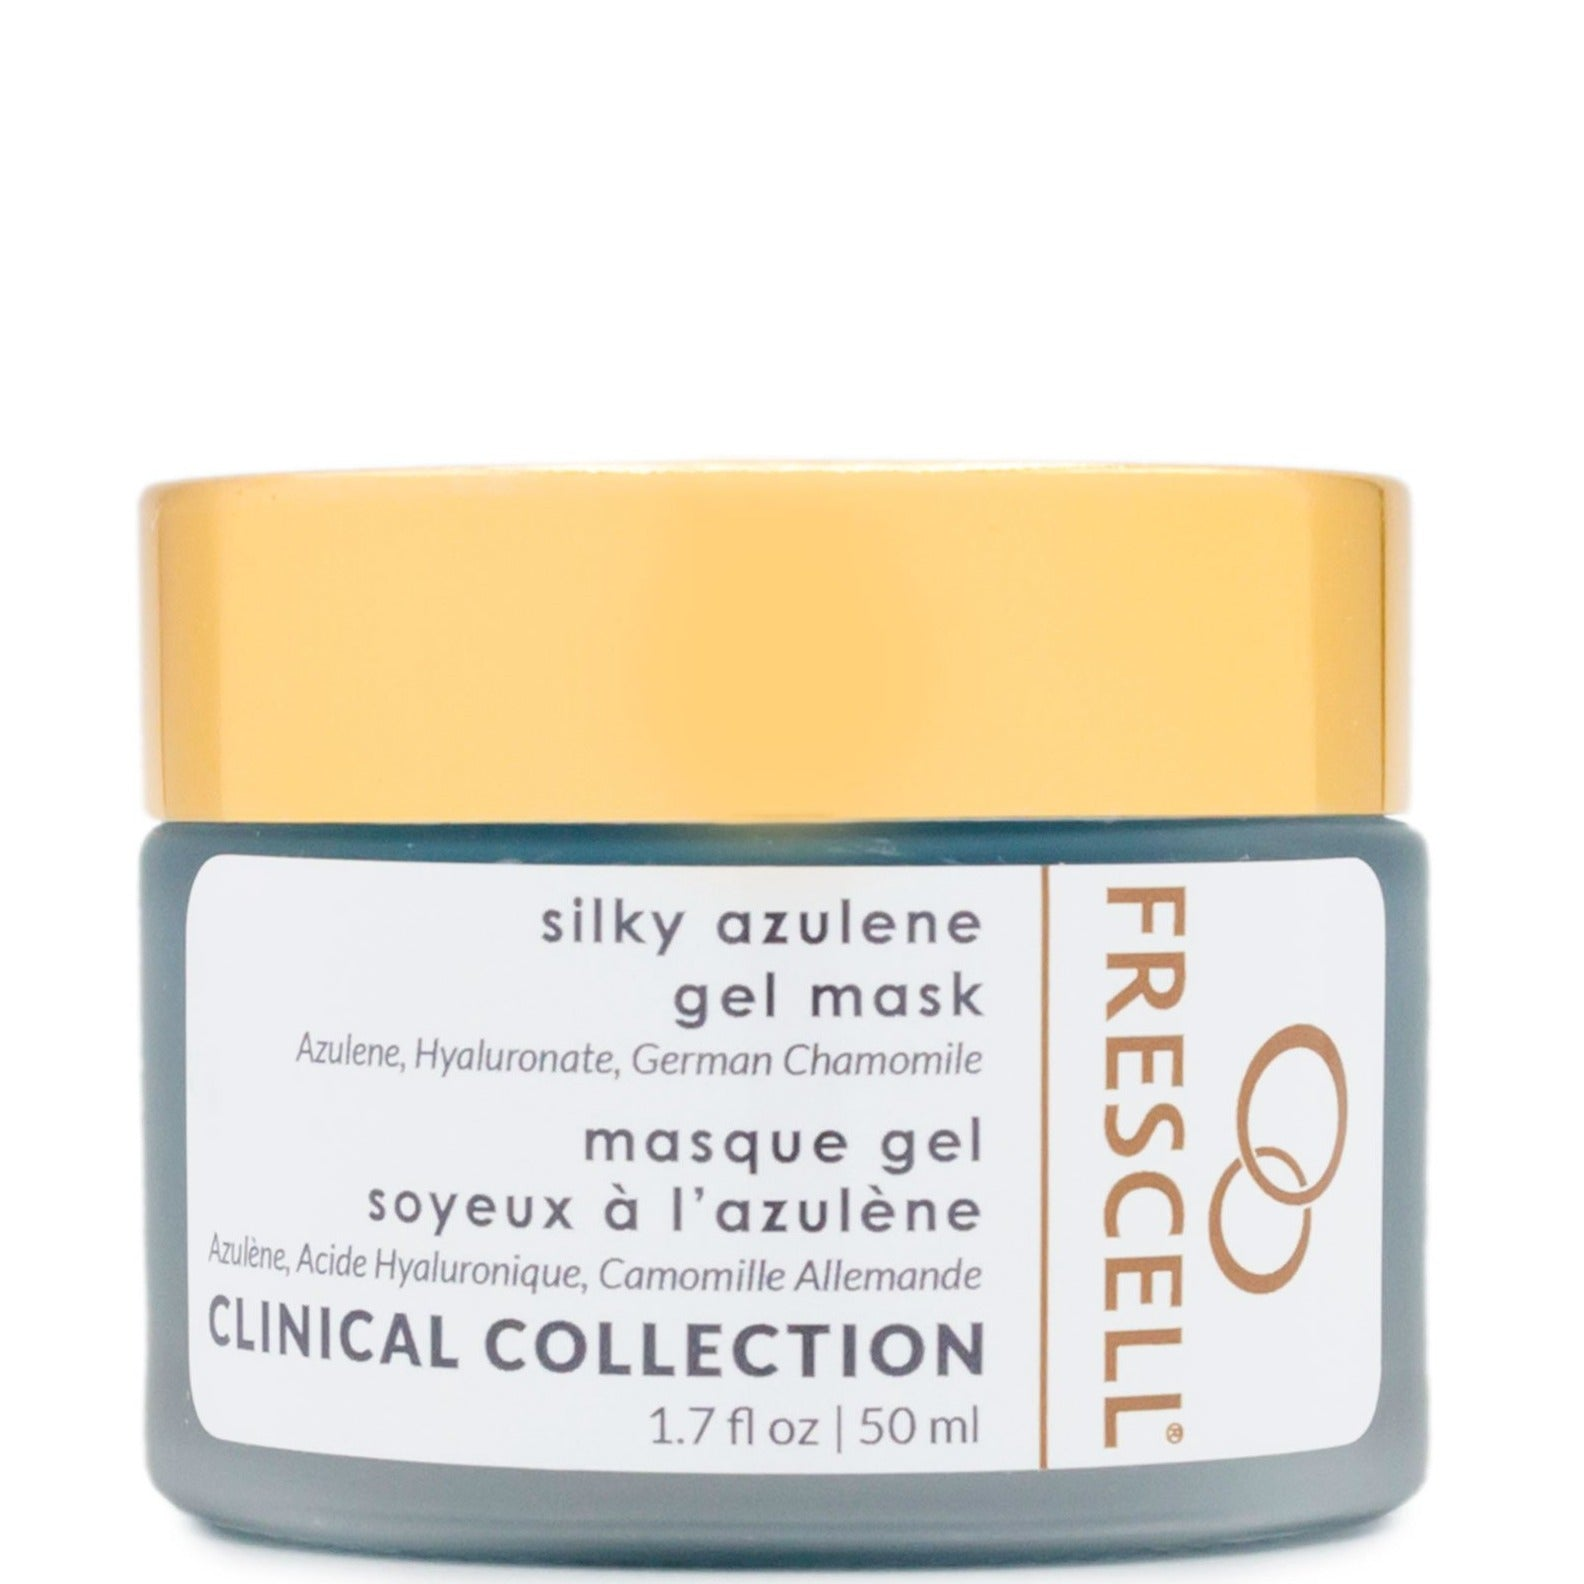 Silky Azulene Gel Mask